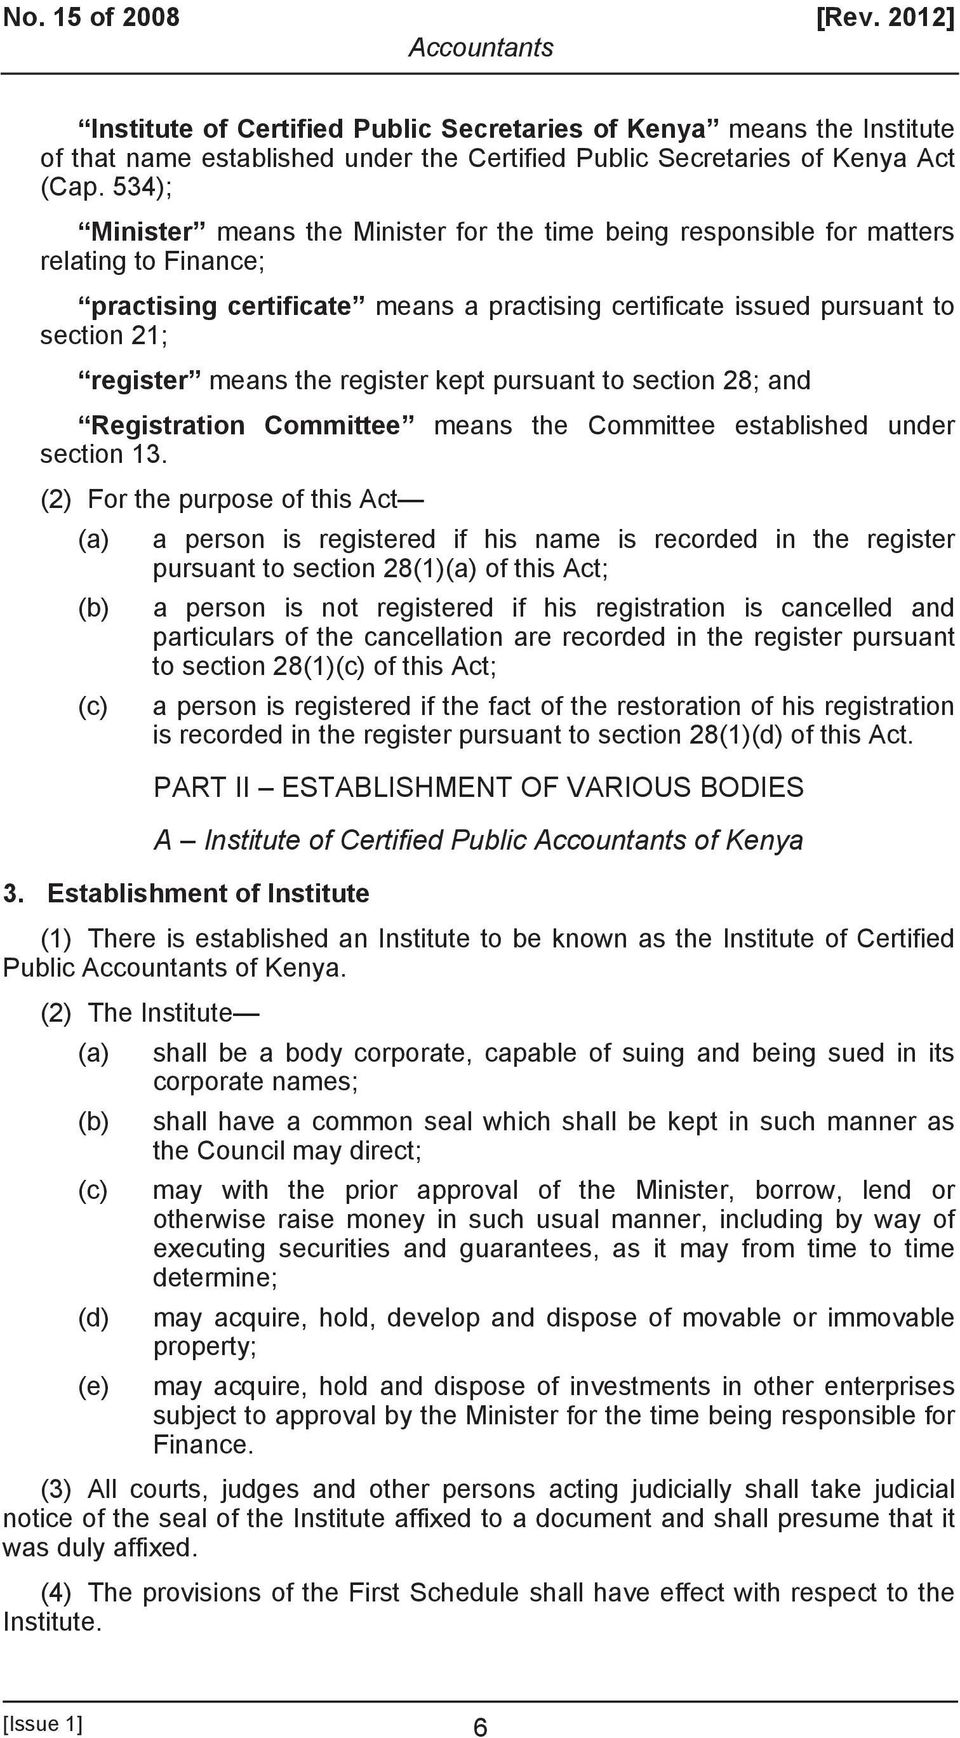 the register kept pursuant to section 28; and Registration Committee means the Committee established under section 13.